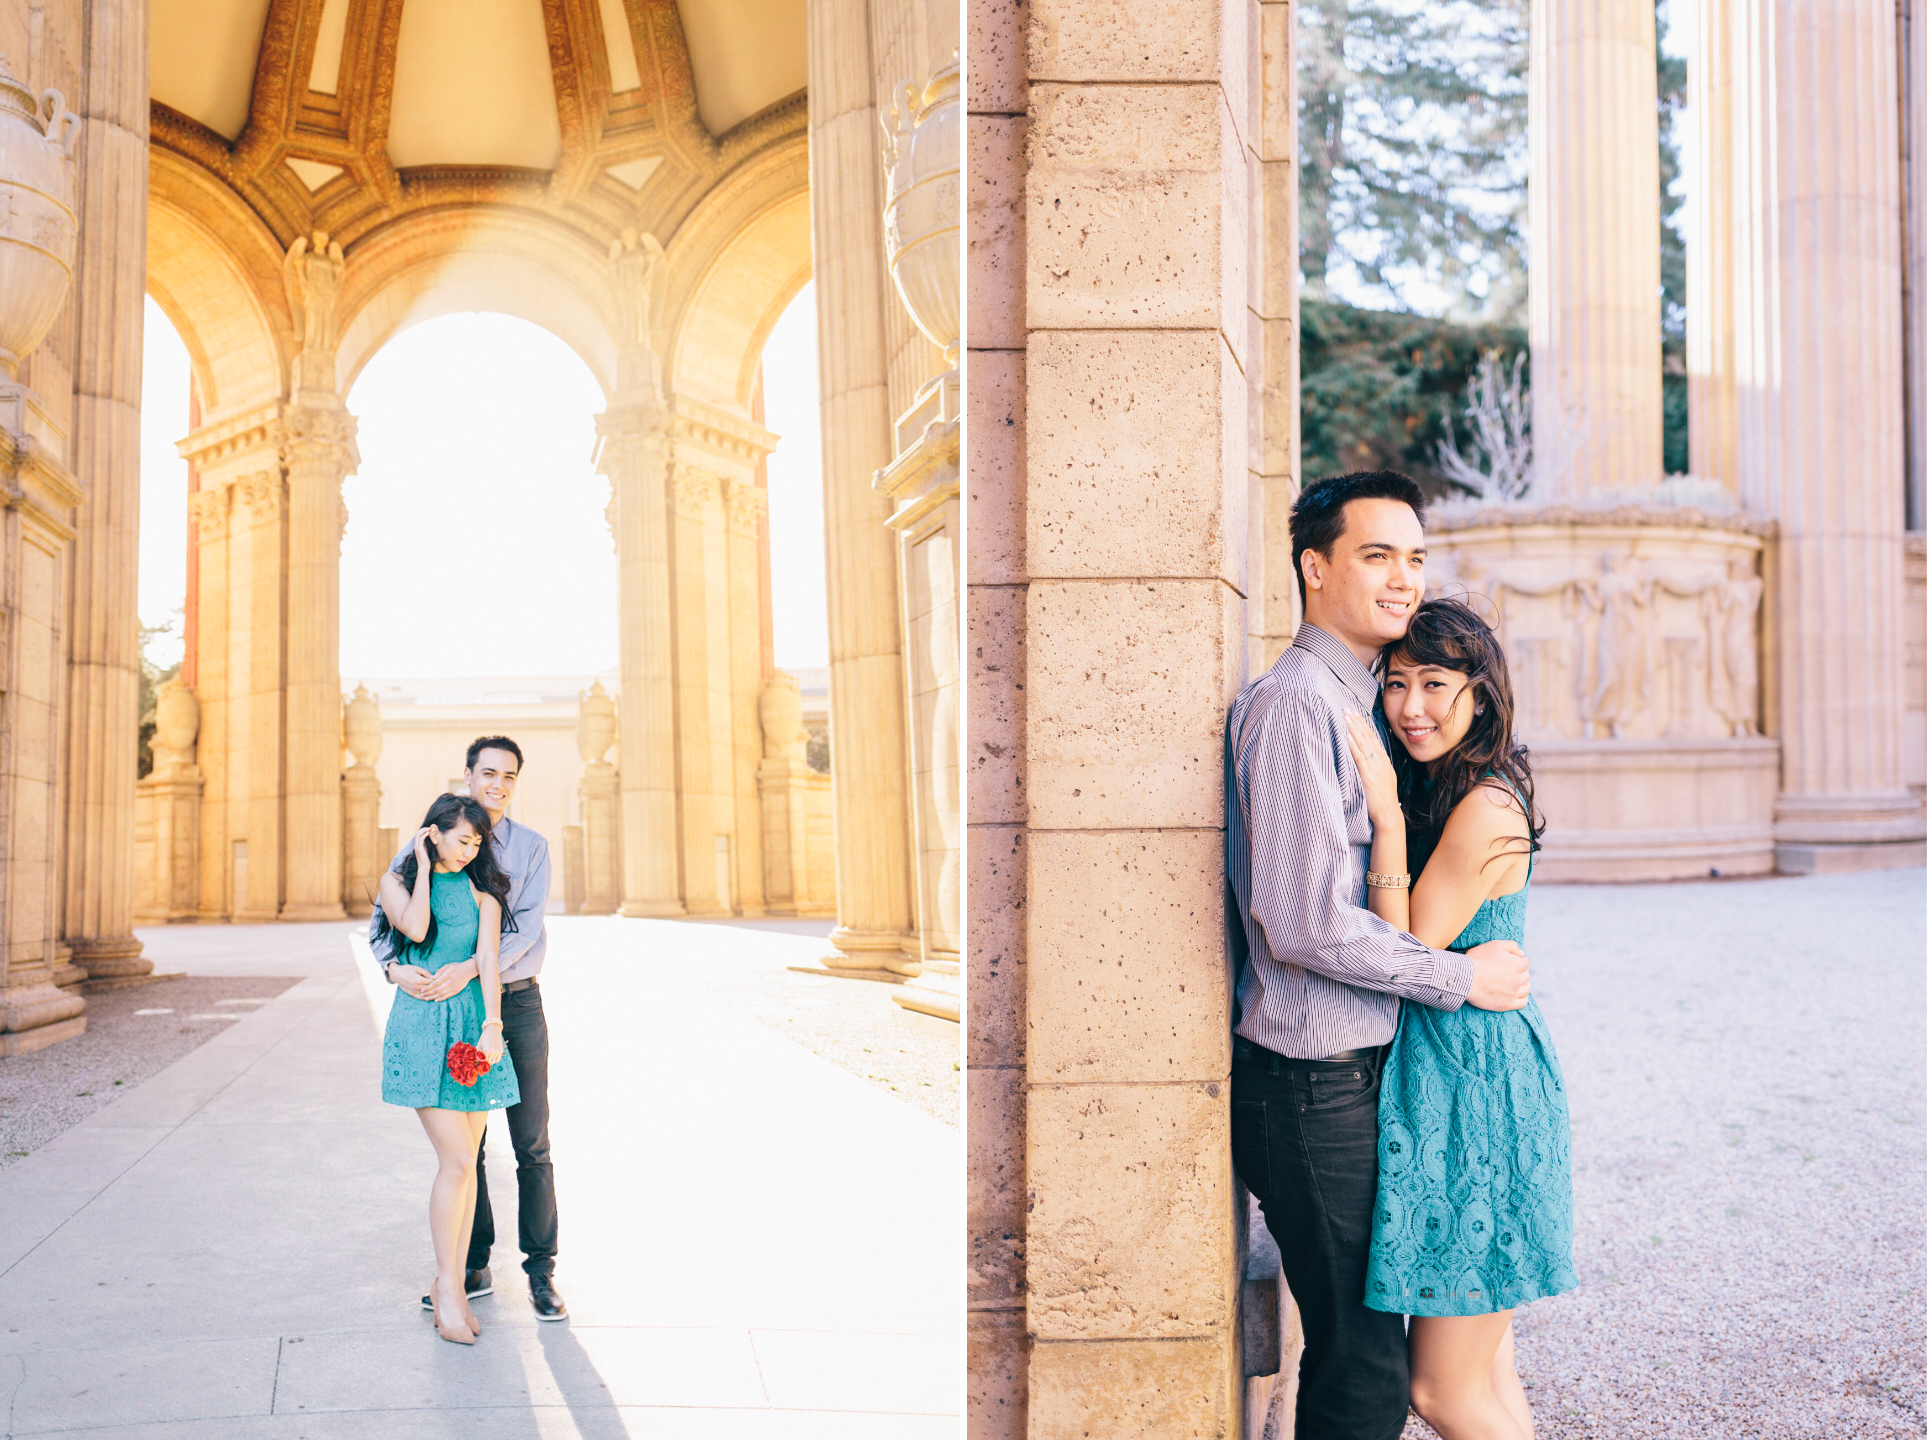 San Francisco Engagement Session Crissy Fields Palace of Fine Arts Engagement Photos by Engagement and Wedding Photographer JBJ Pictures-331.jpg